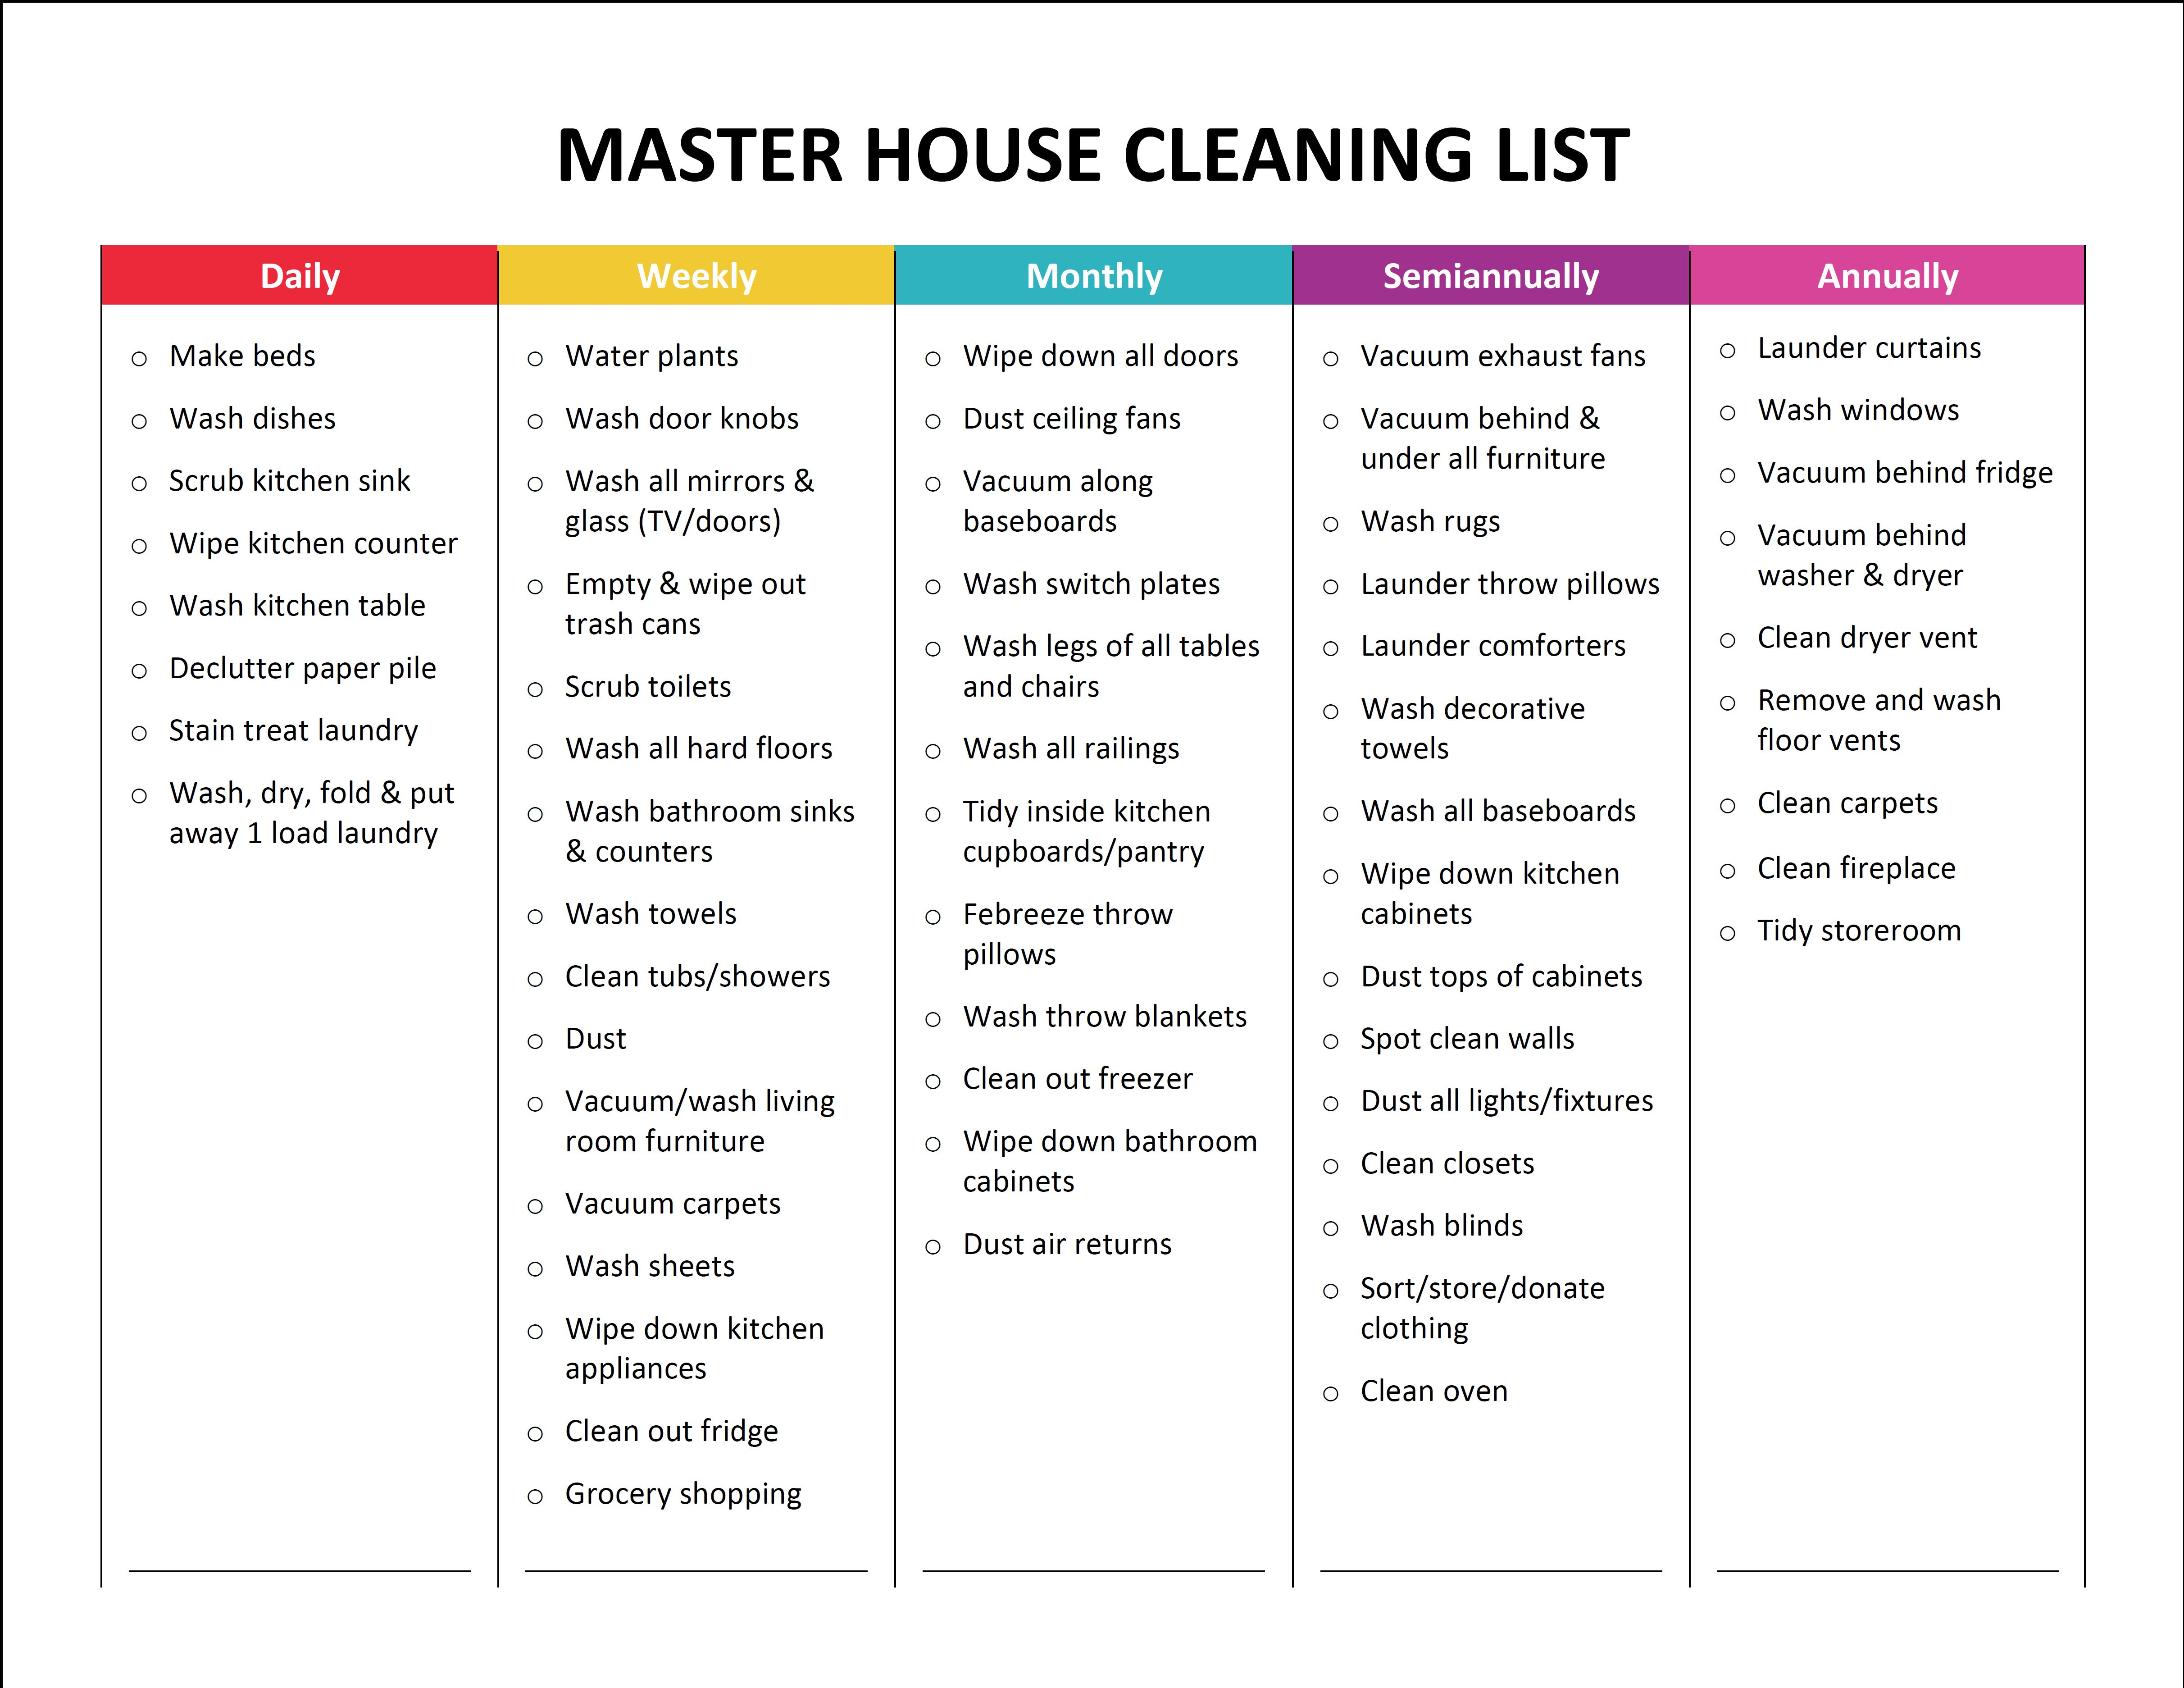 17 Best images about Chores list ideas on Pinterest | Age ...